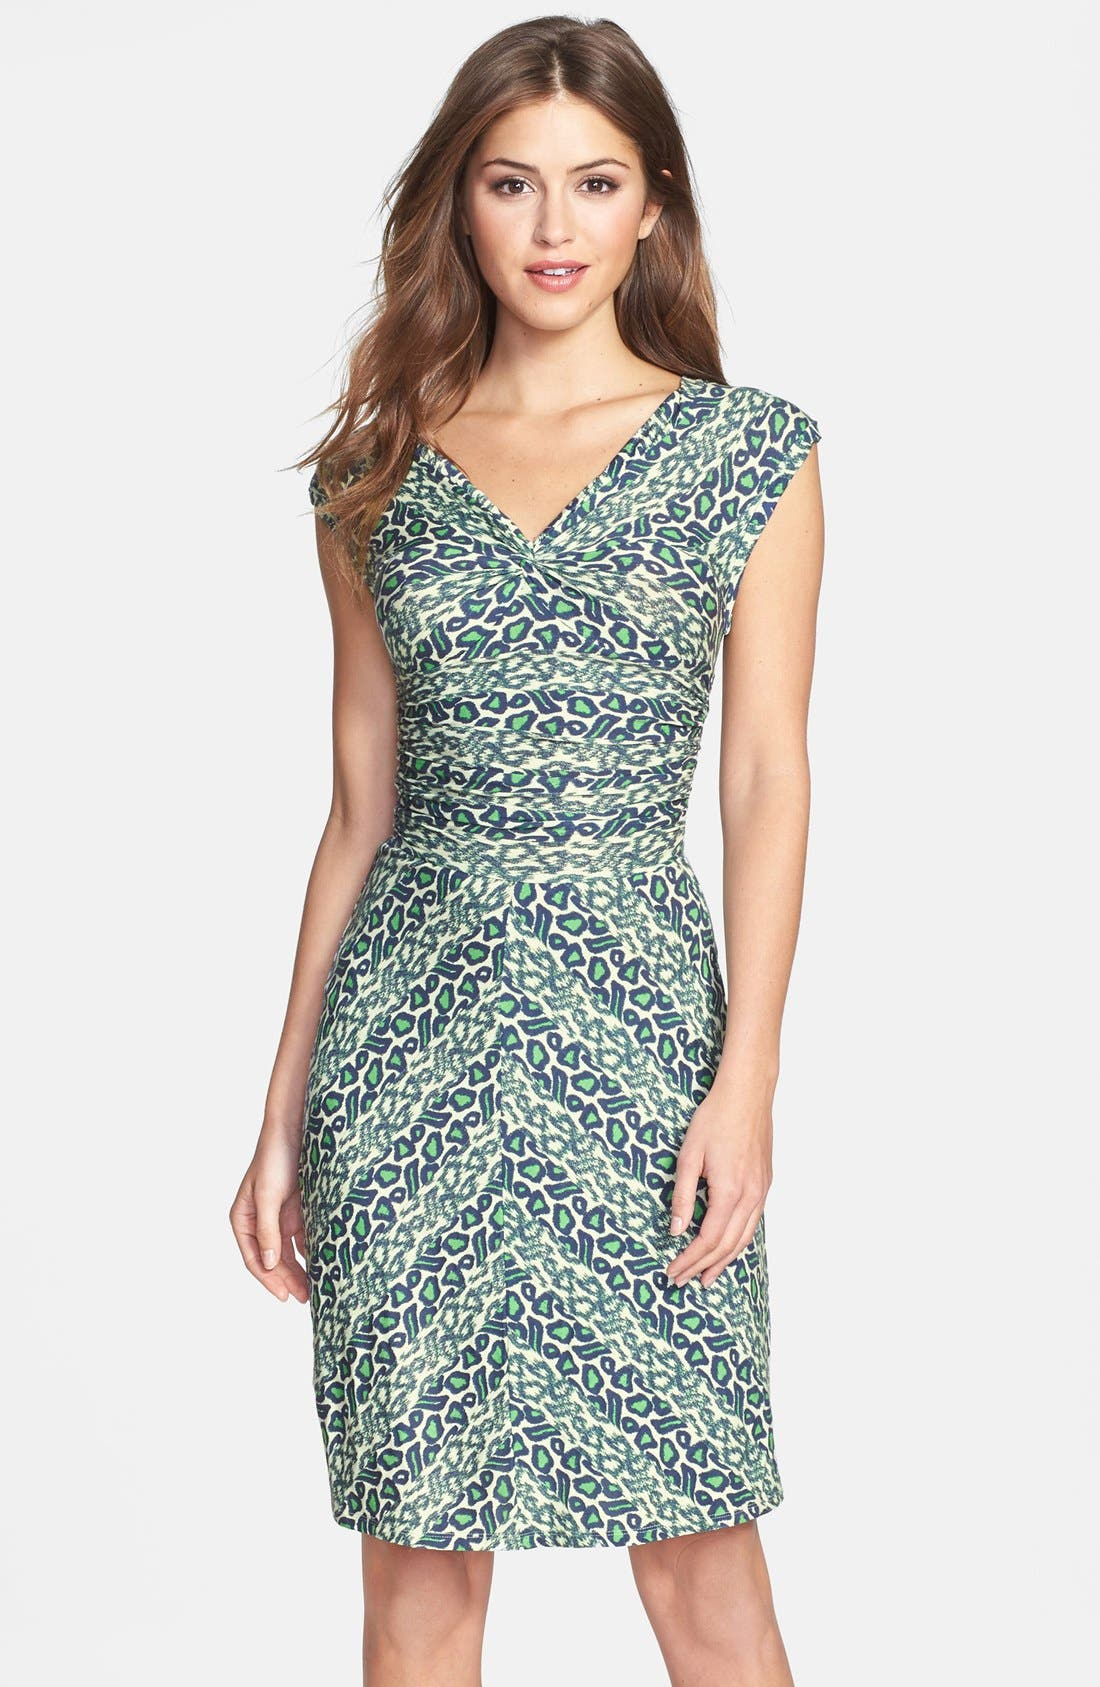 Alternate Image 1 Selected - Plenty by Tracy Reese 'Brooke' Print Knotted Jersey Sheath Dress